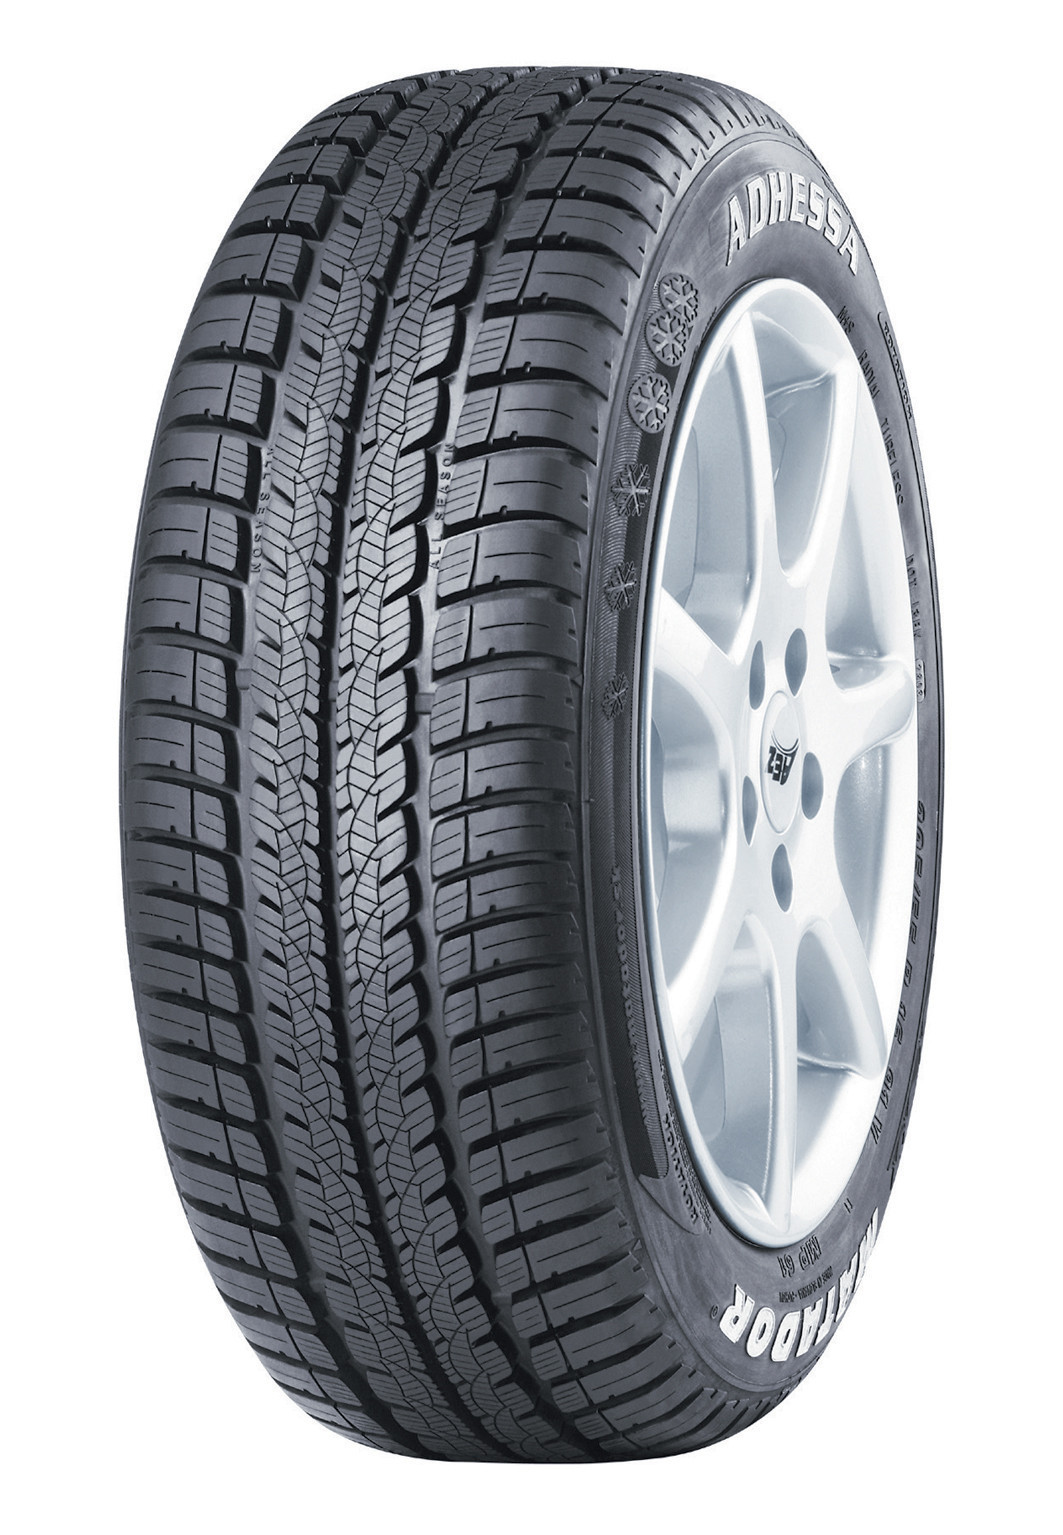 Anvelopa All Season 165/70R13 79T Matador Adhessa Evo Mp61